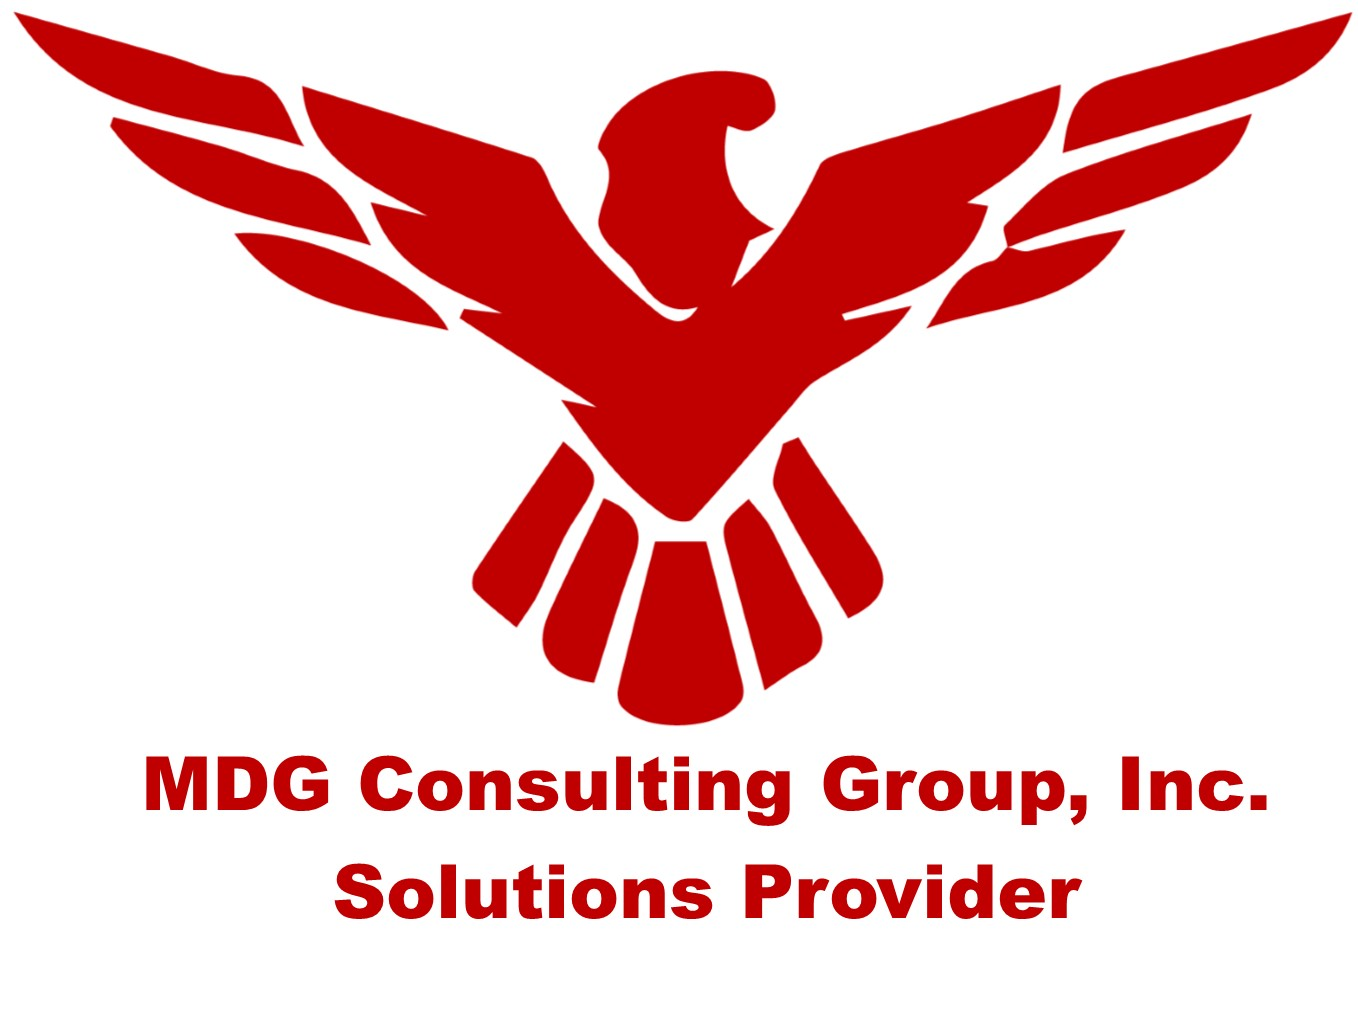 MDG Consulting Group, Inc. logo